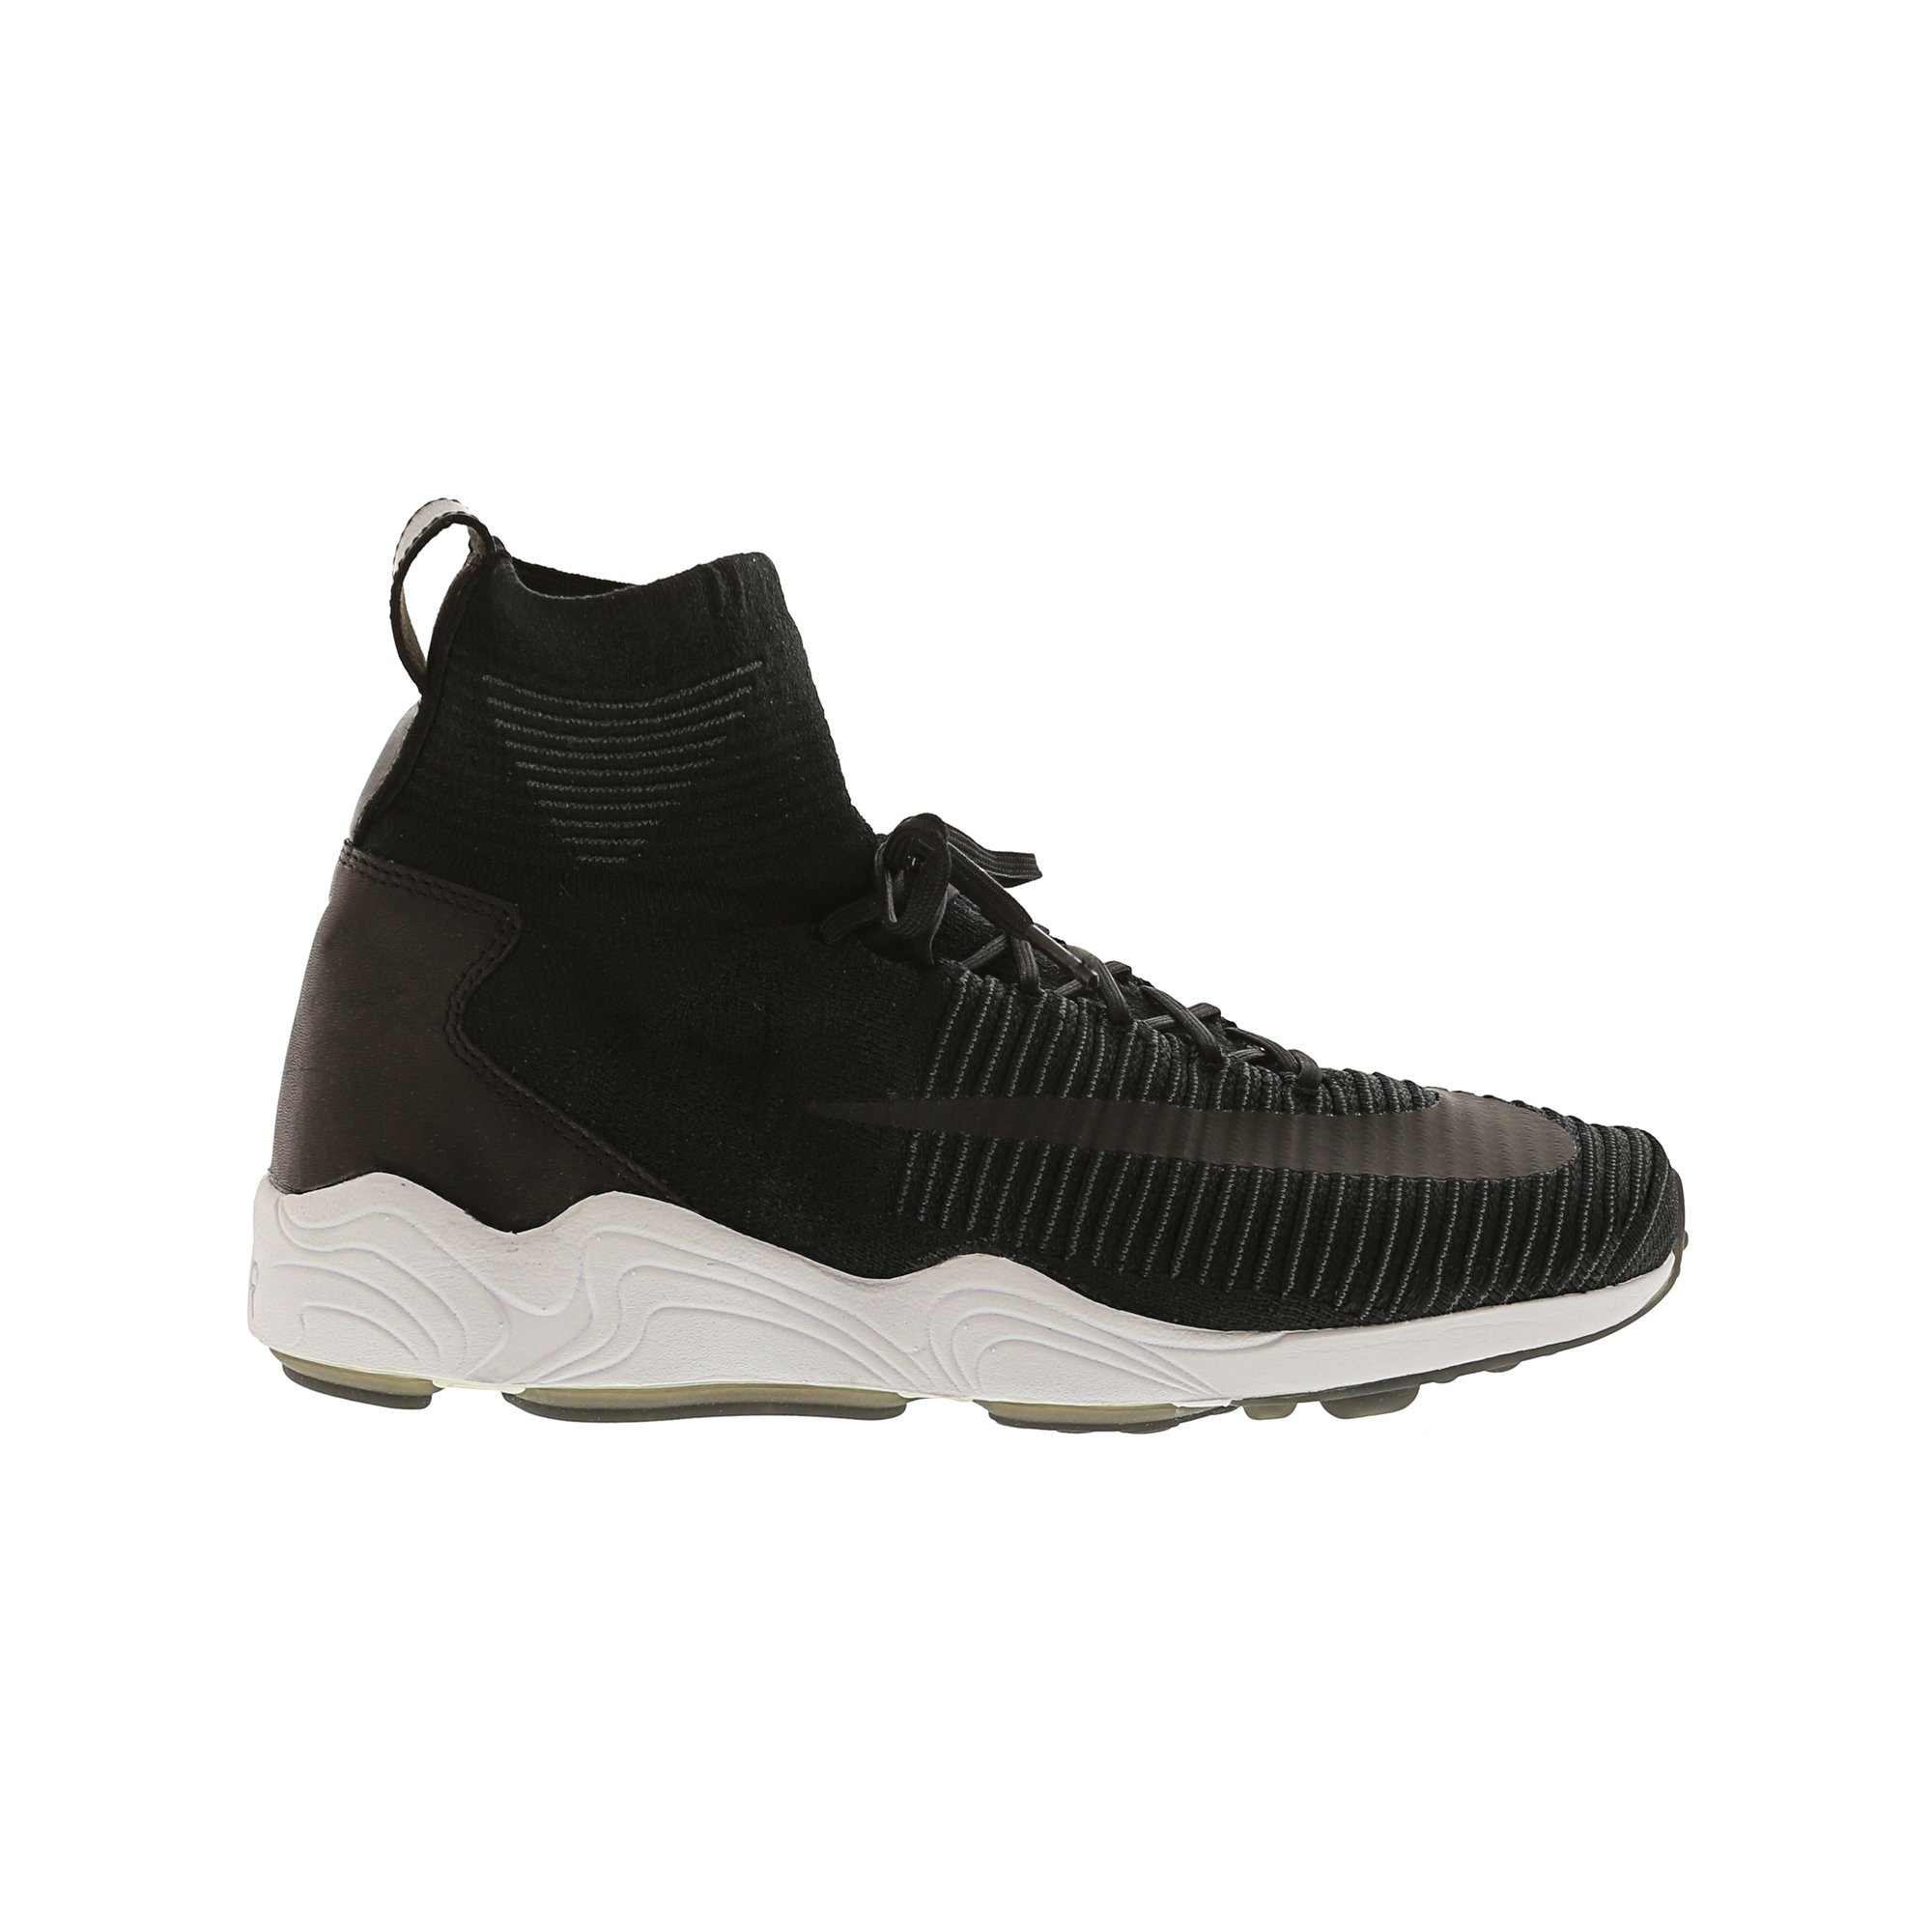 fa398e9bf3f Nike Men s Zoom Mercurial Xi Fk Deep Royal Blue   Black-Volt High-Top  Running Shoe - 12M